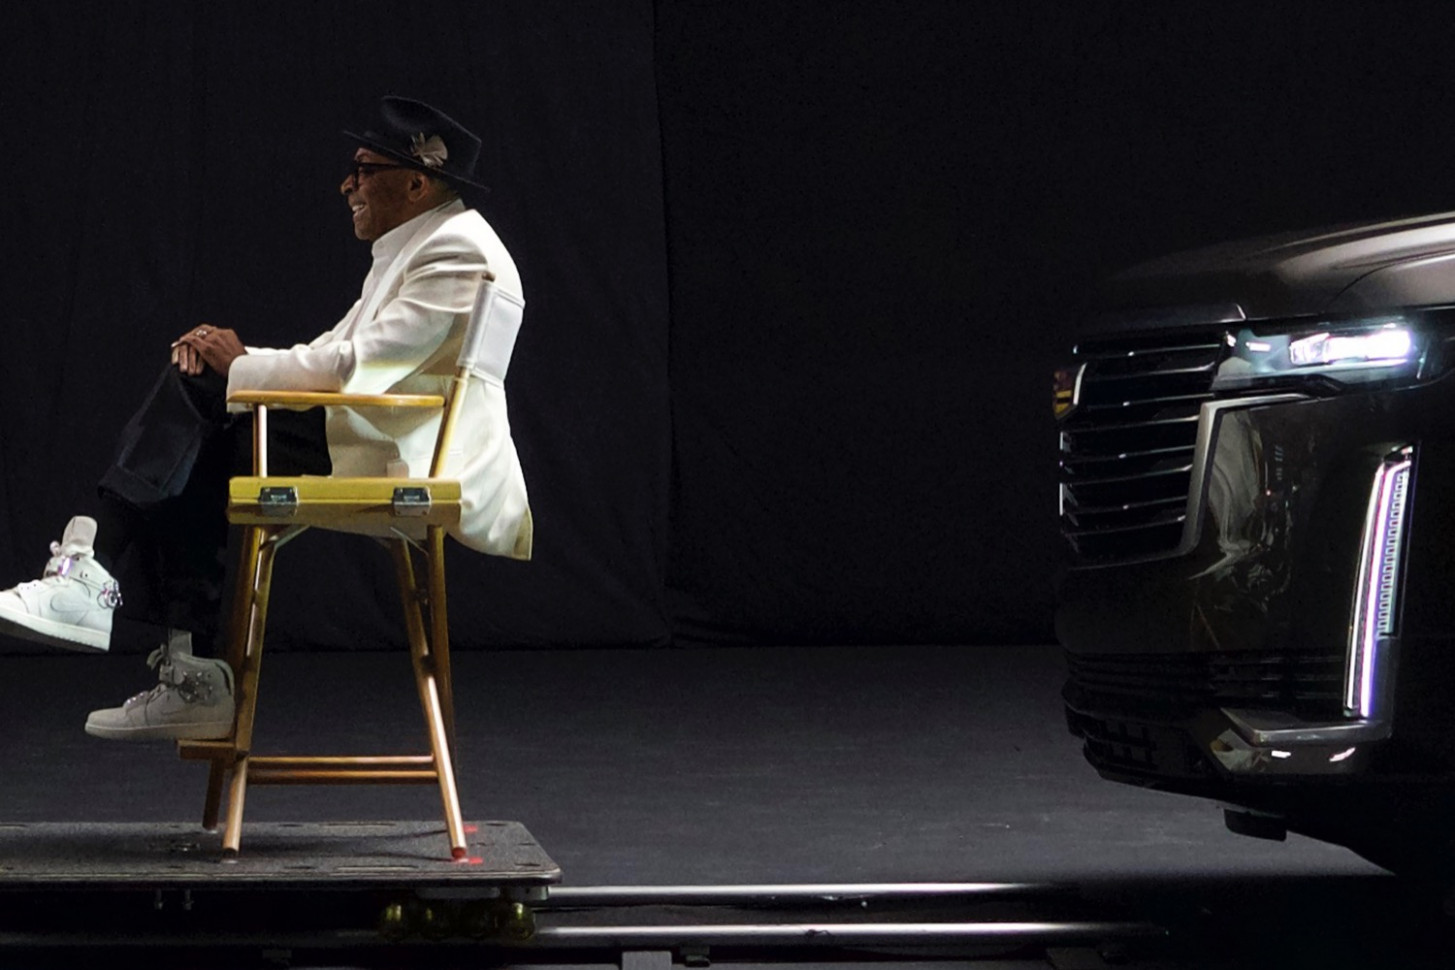 Cadillac To Pursue Marketing Efforts With Celebrities | GM Authority - cadillac theme song 2020